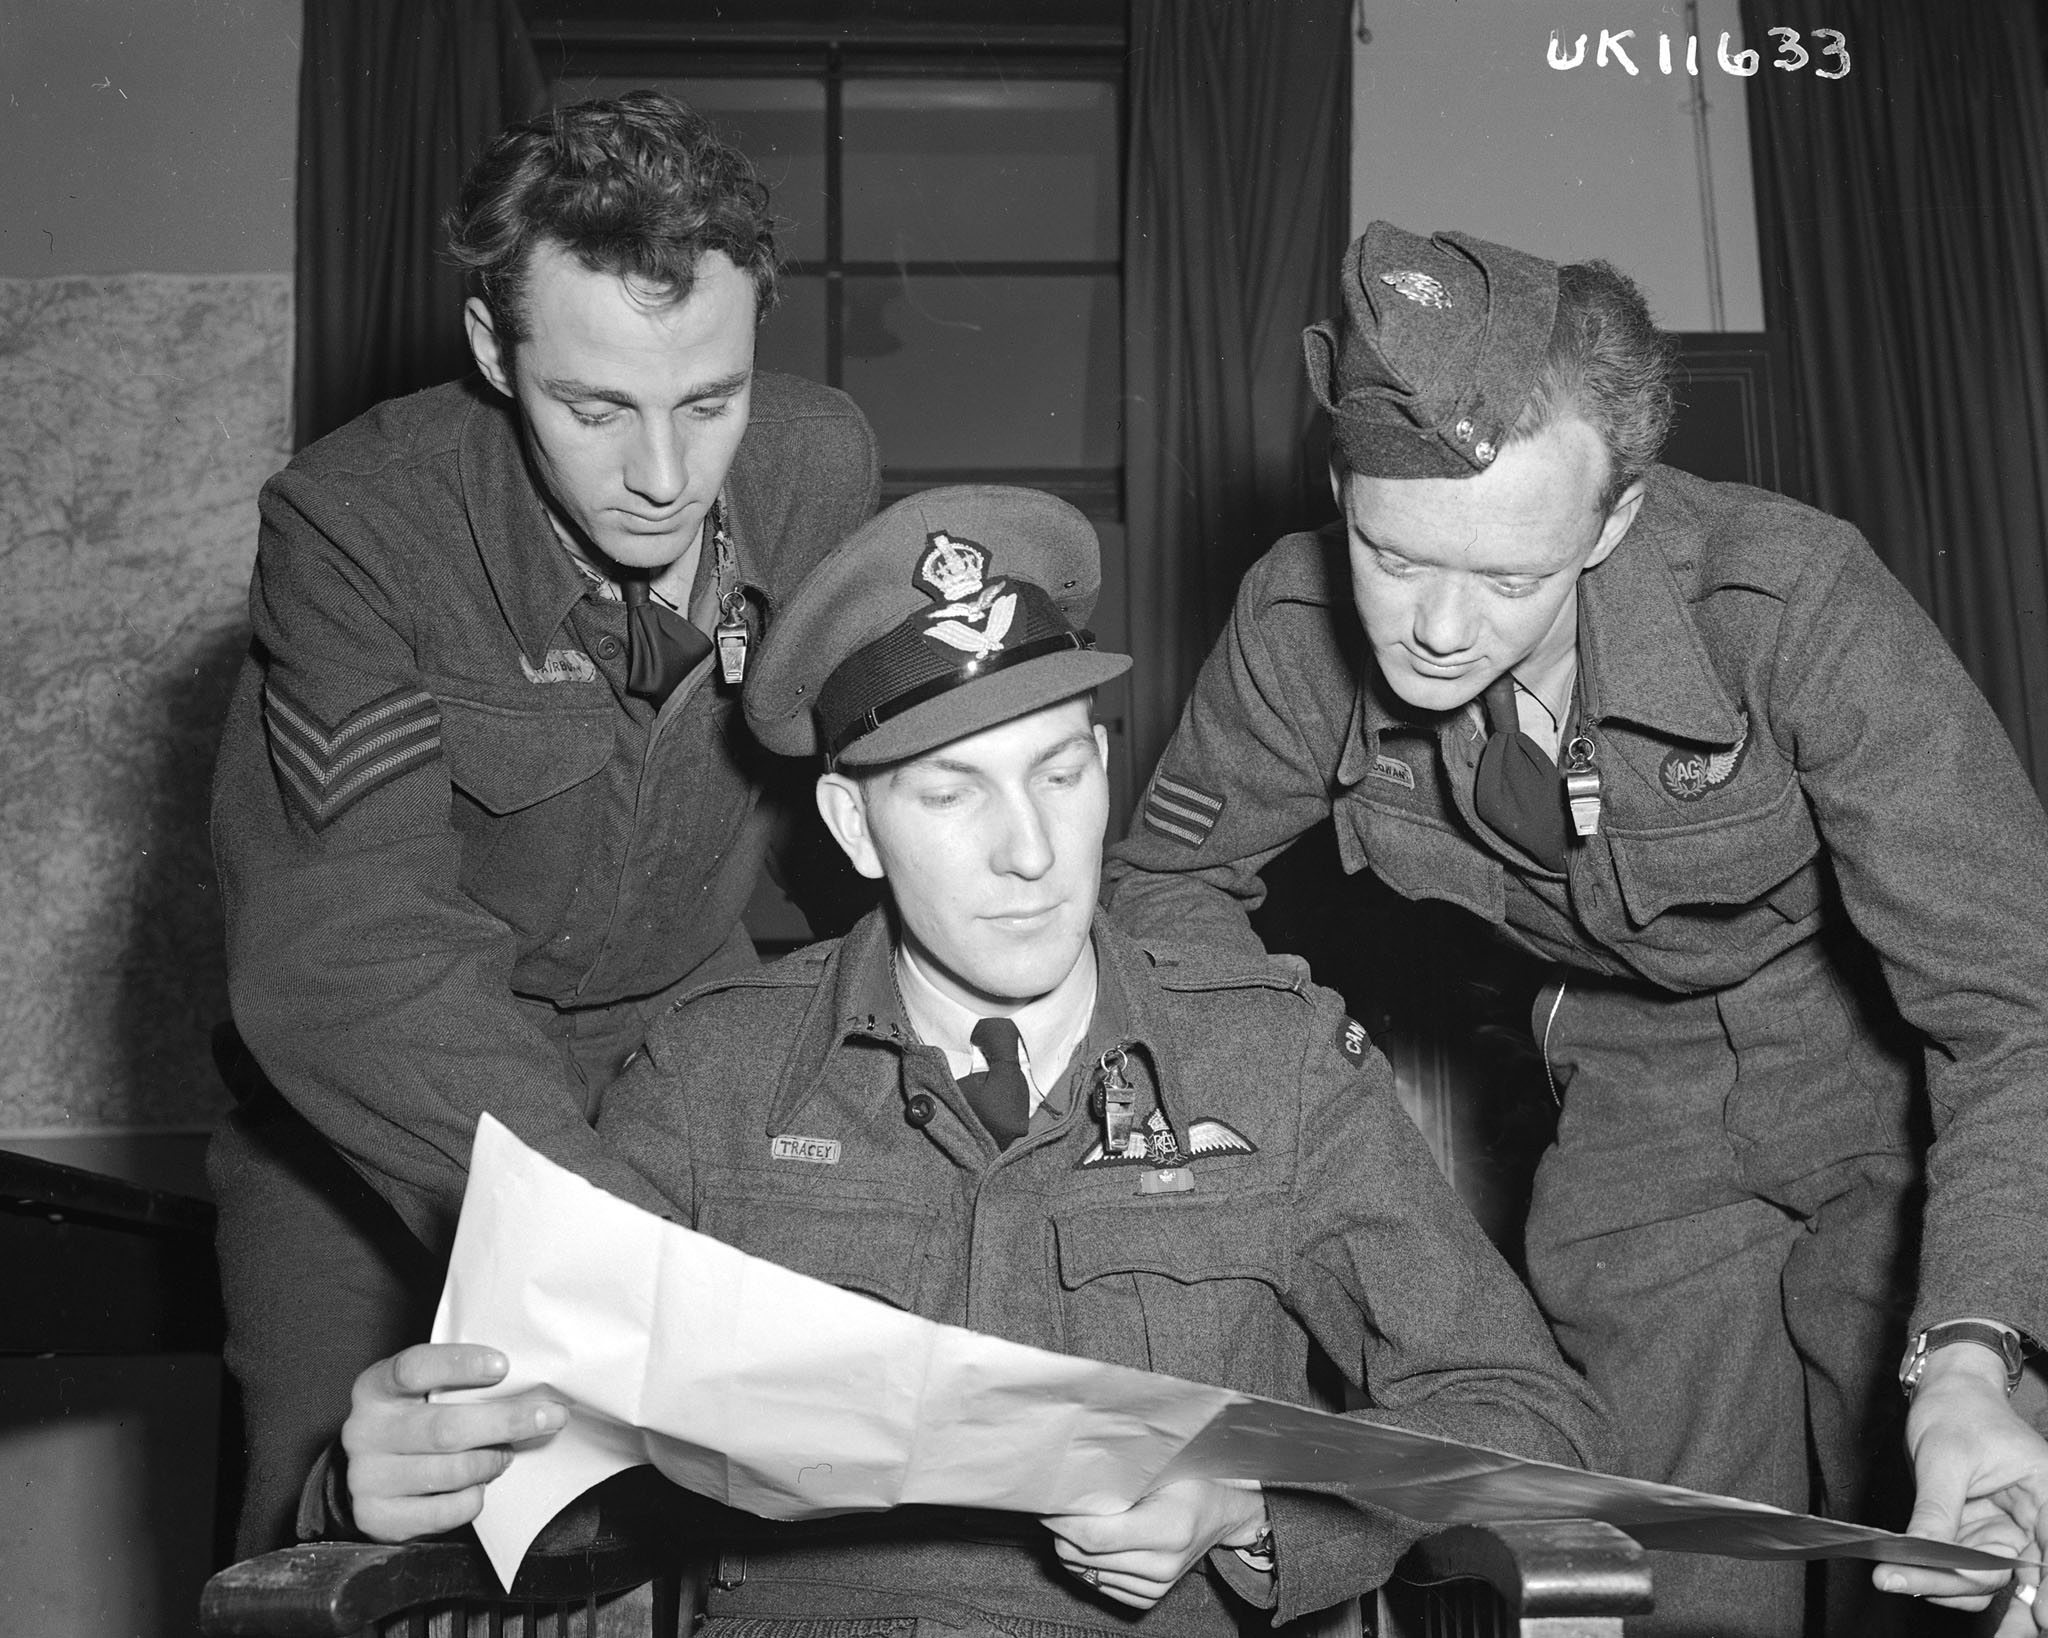 Three men wearing military uniforms look at a large sheet of paper.